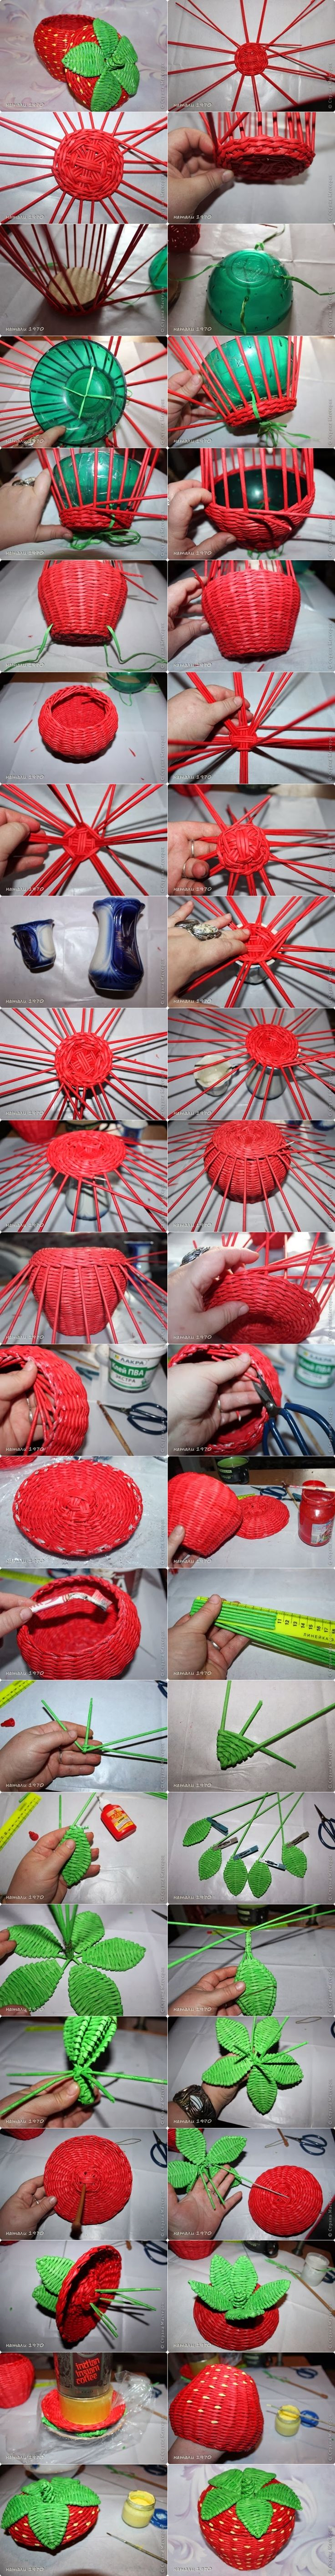 strawberry-basket-tutorial-1